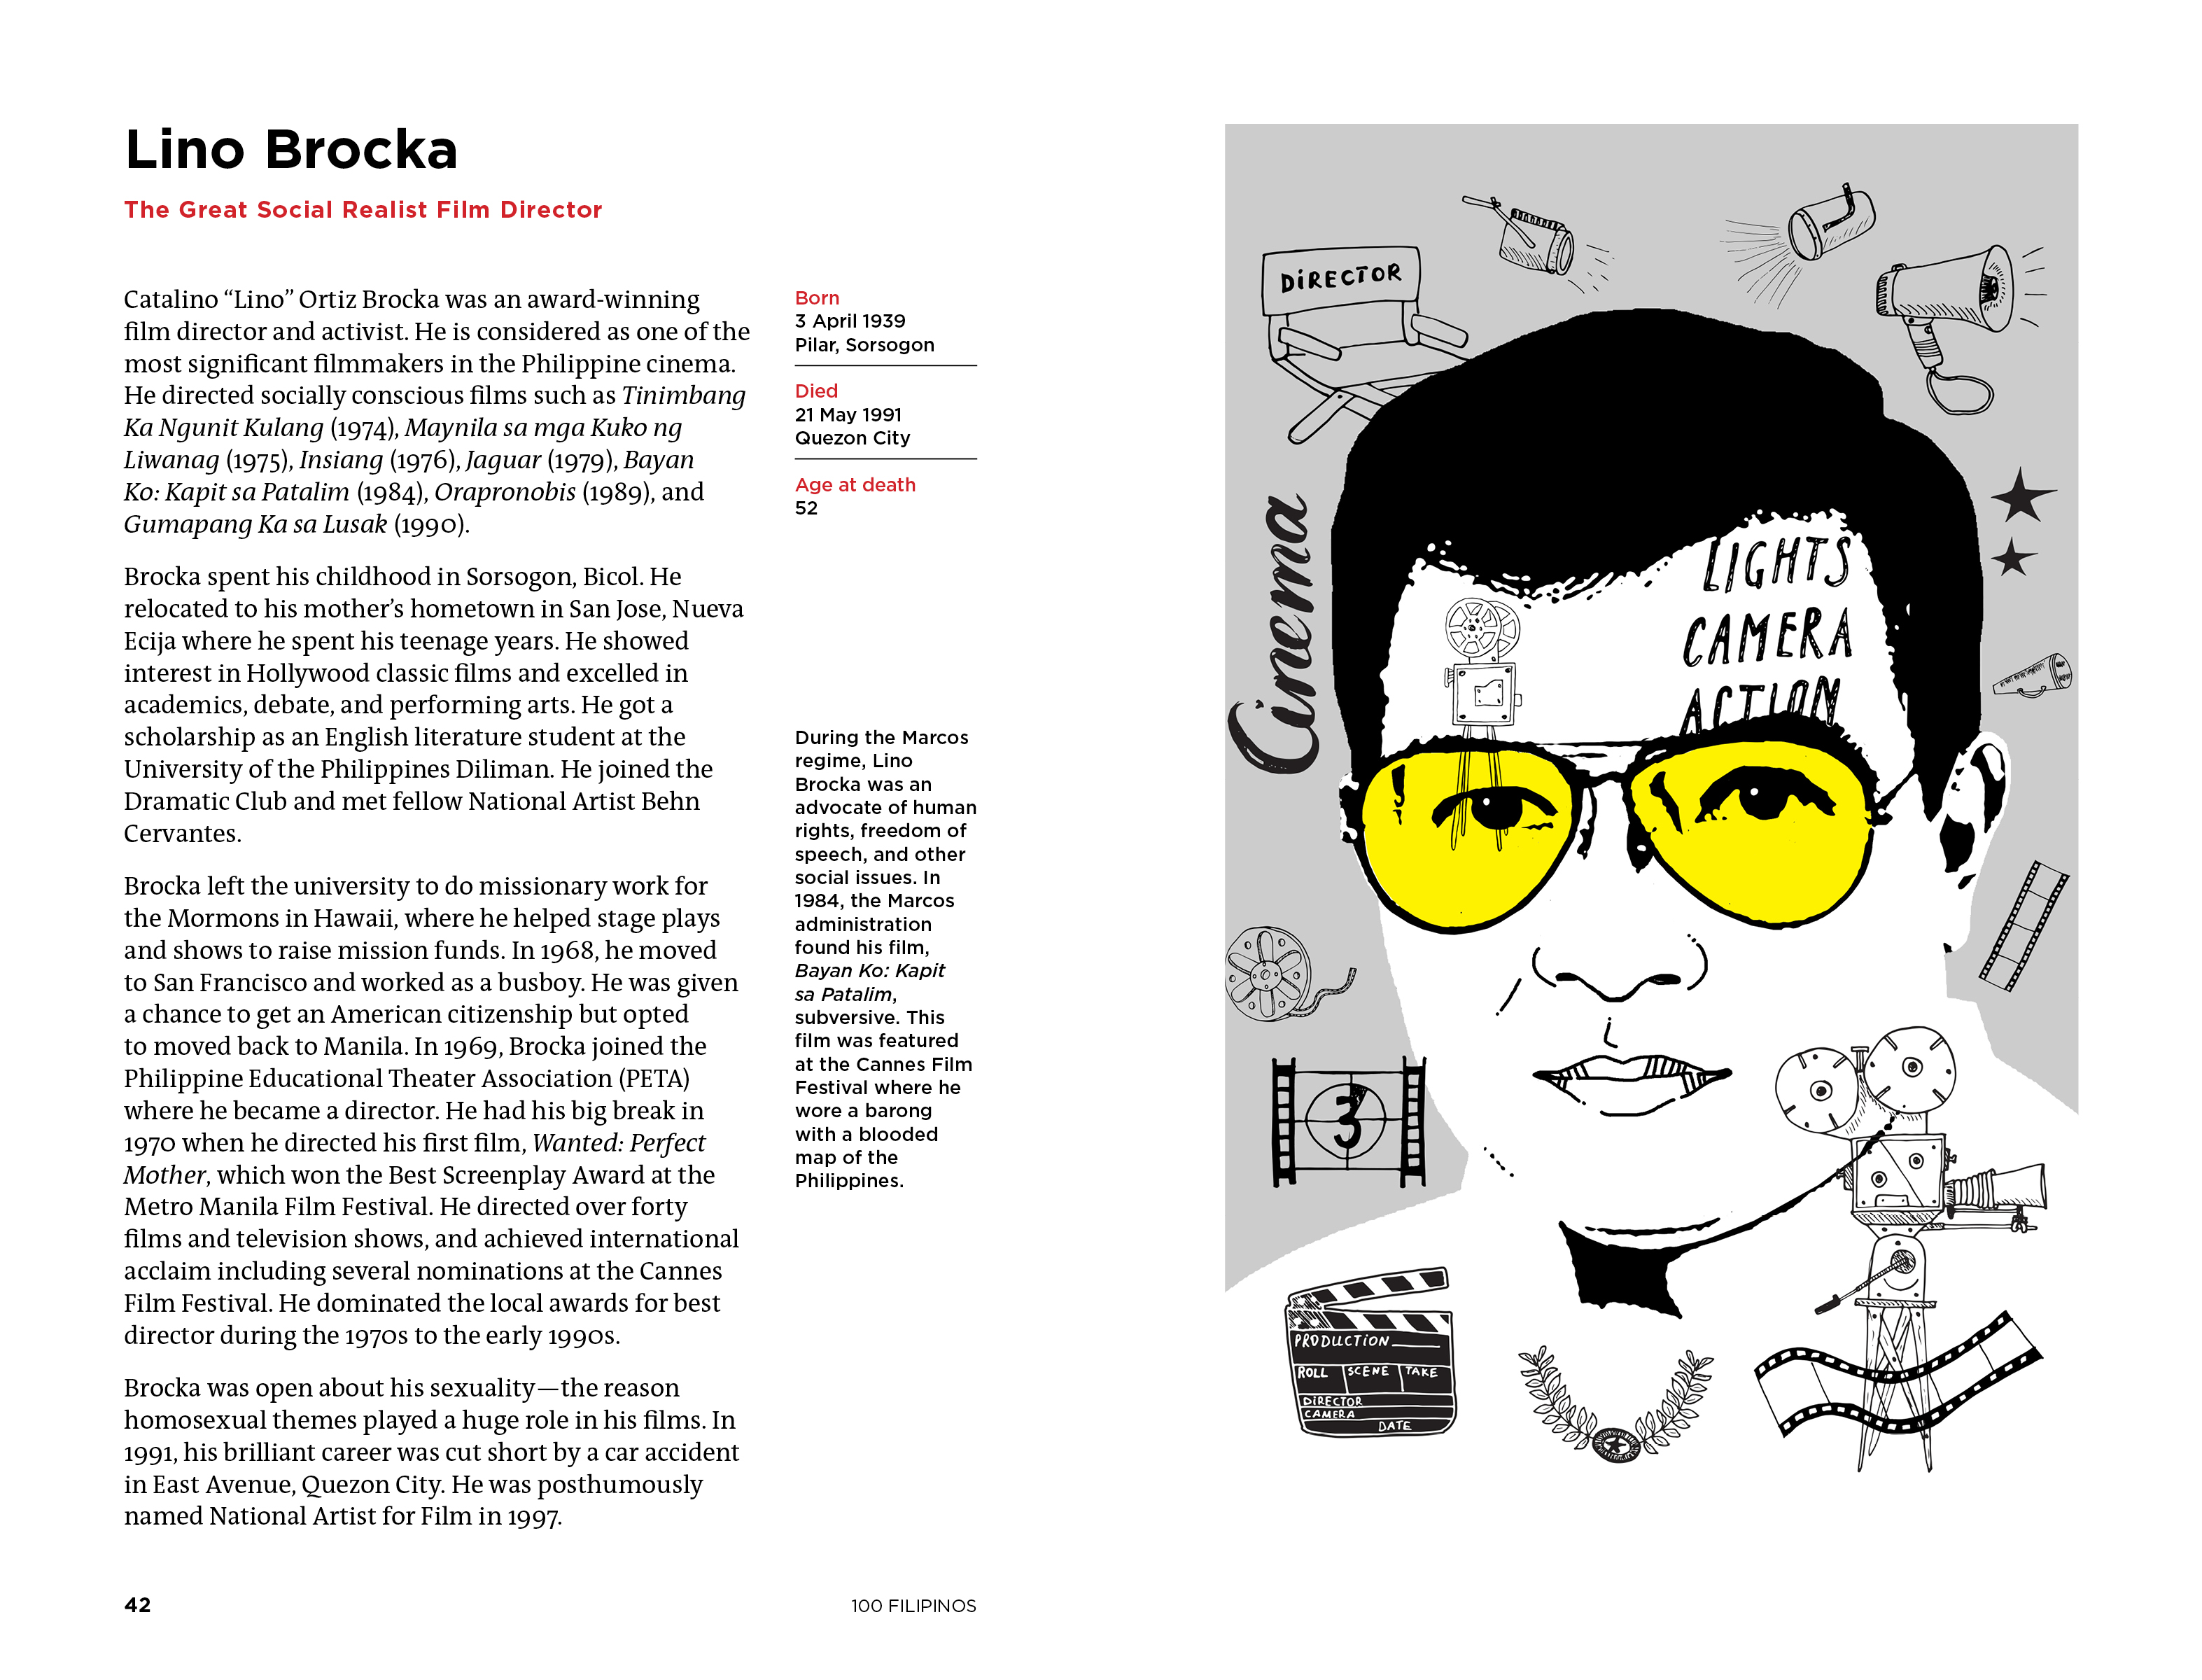 Lino Brocka illustration